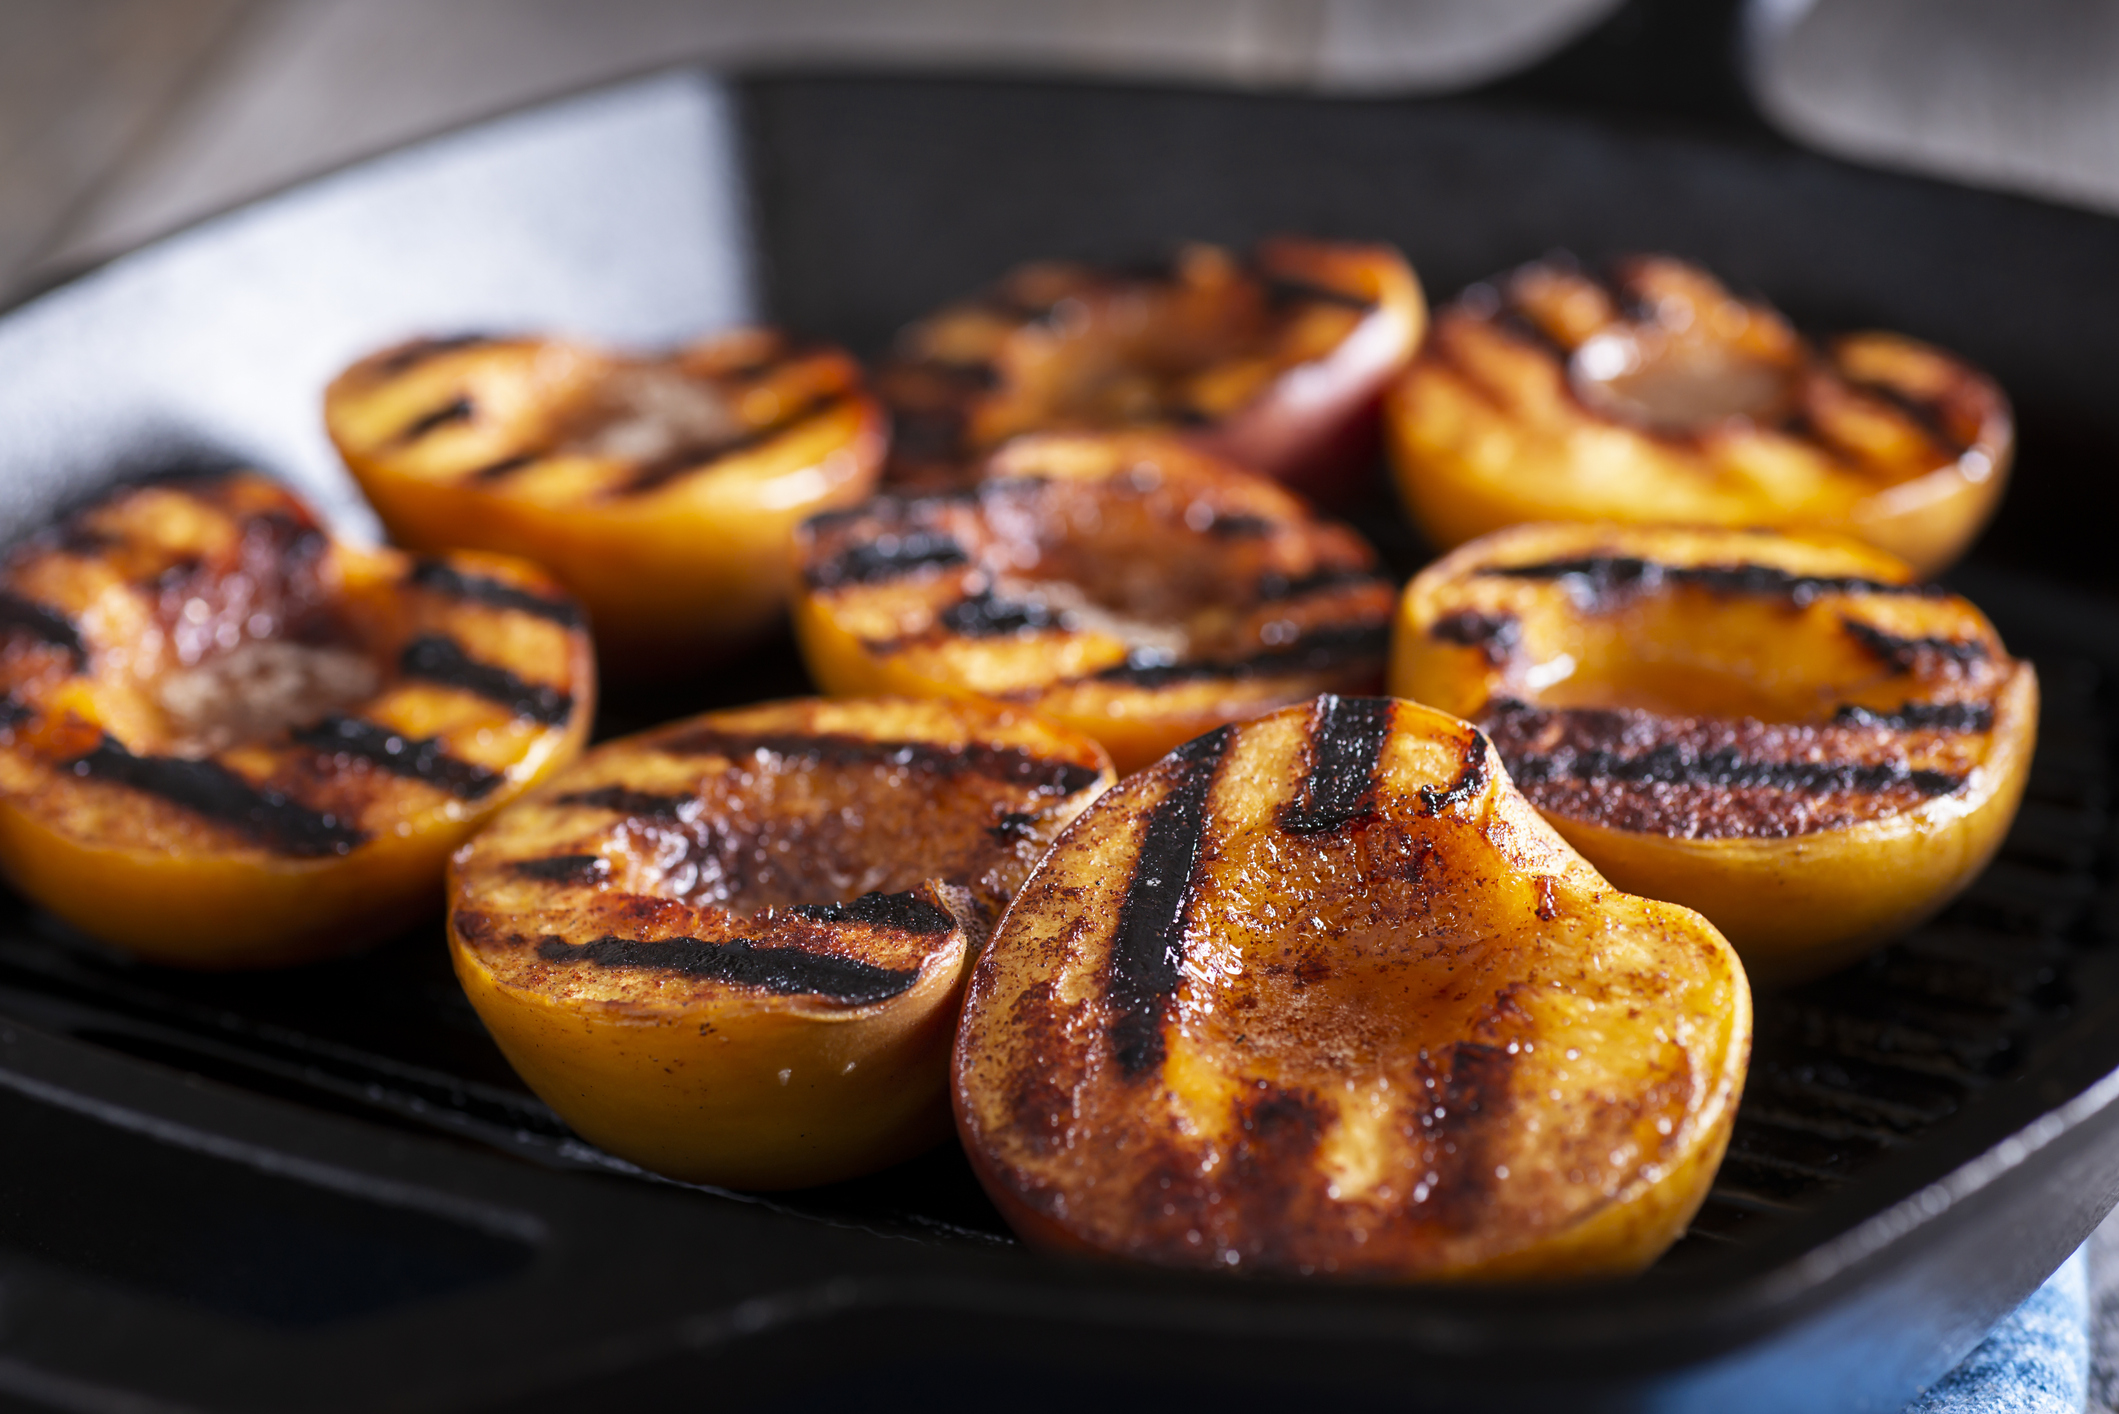 Grilled Peaches with Cinnamon and Honey in a Cast Iron Grill Pan